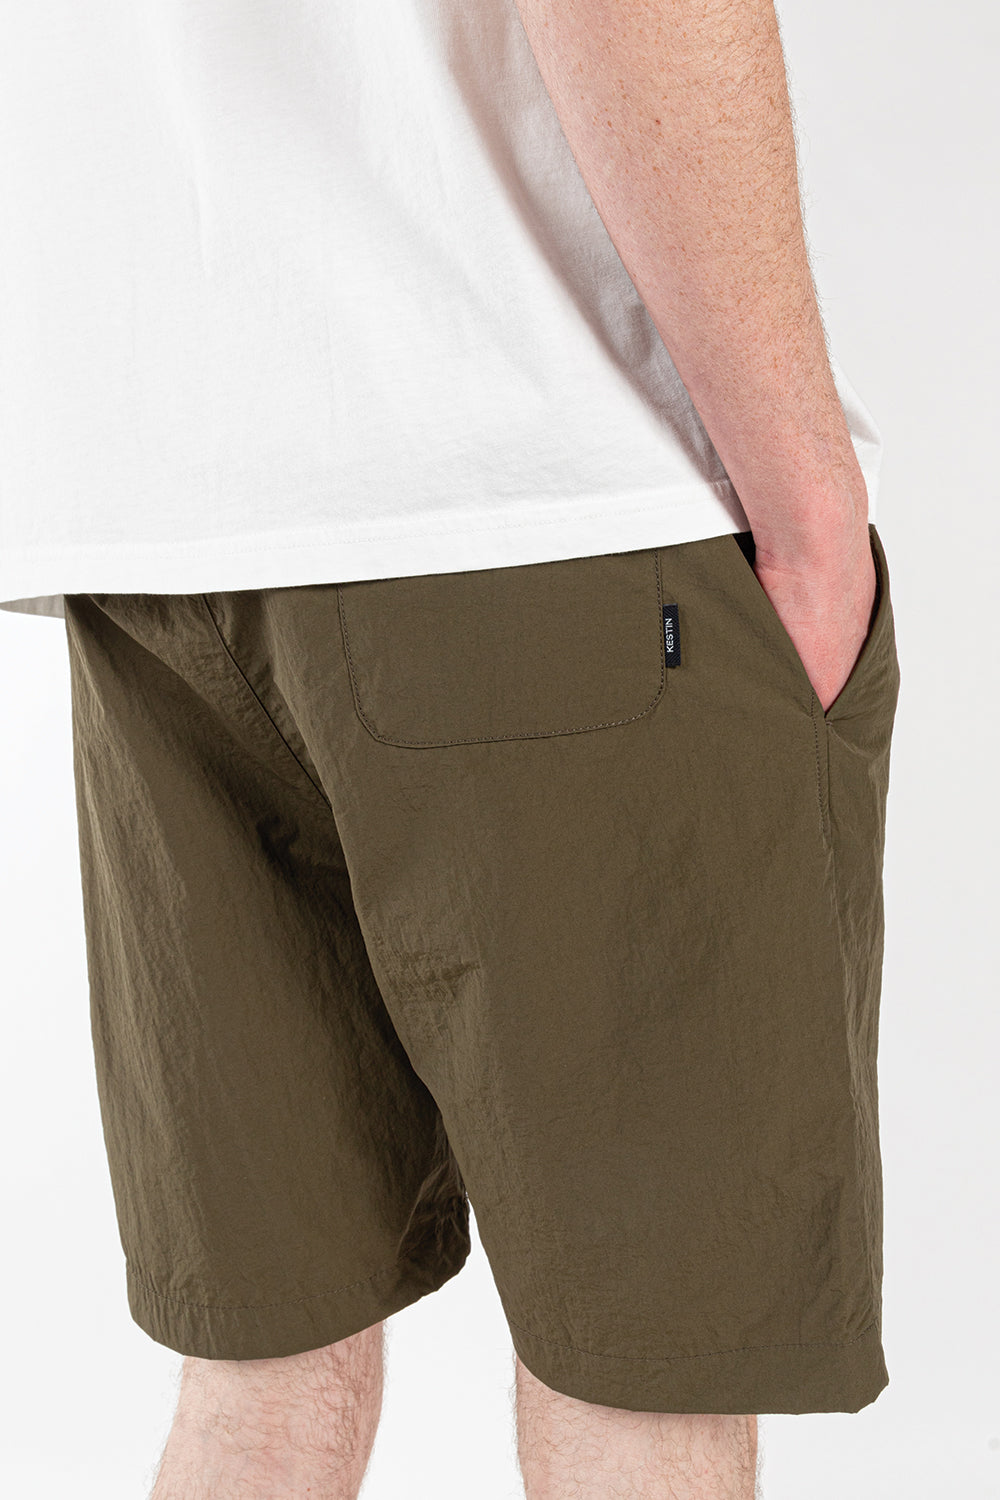 kestin-inverness-shorts-olive